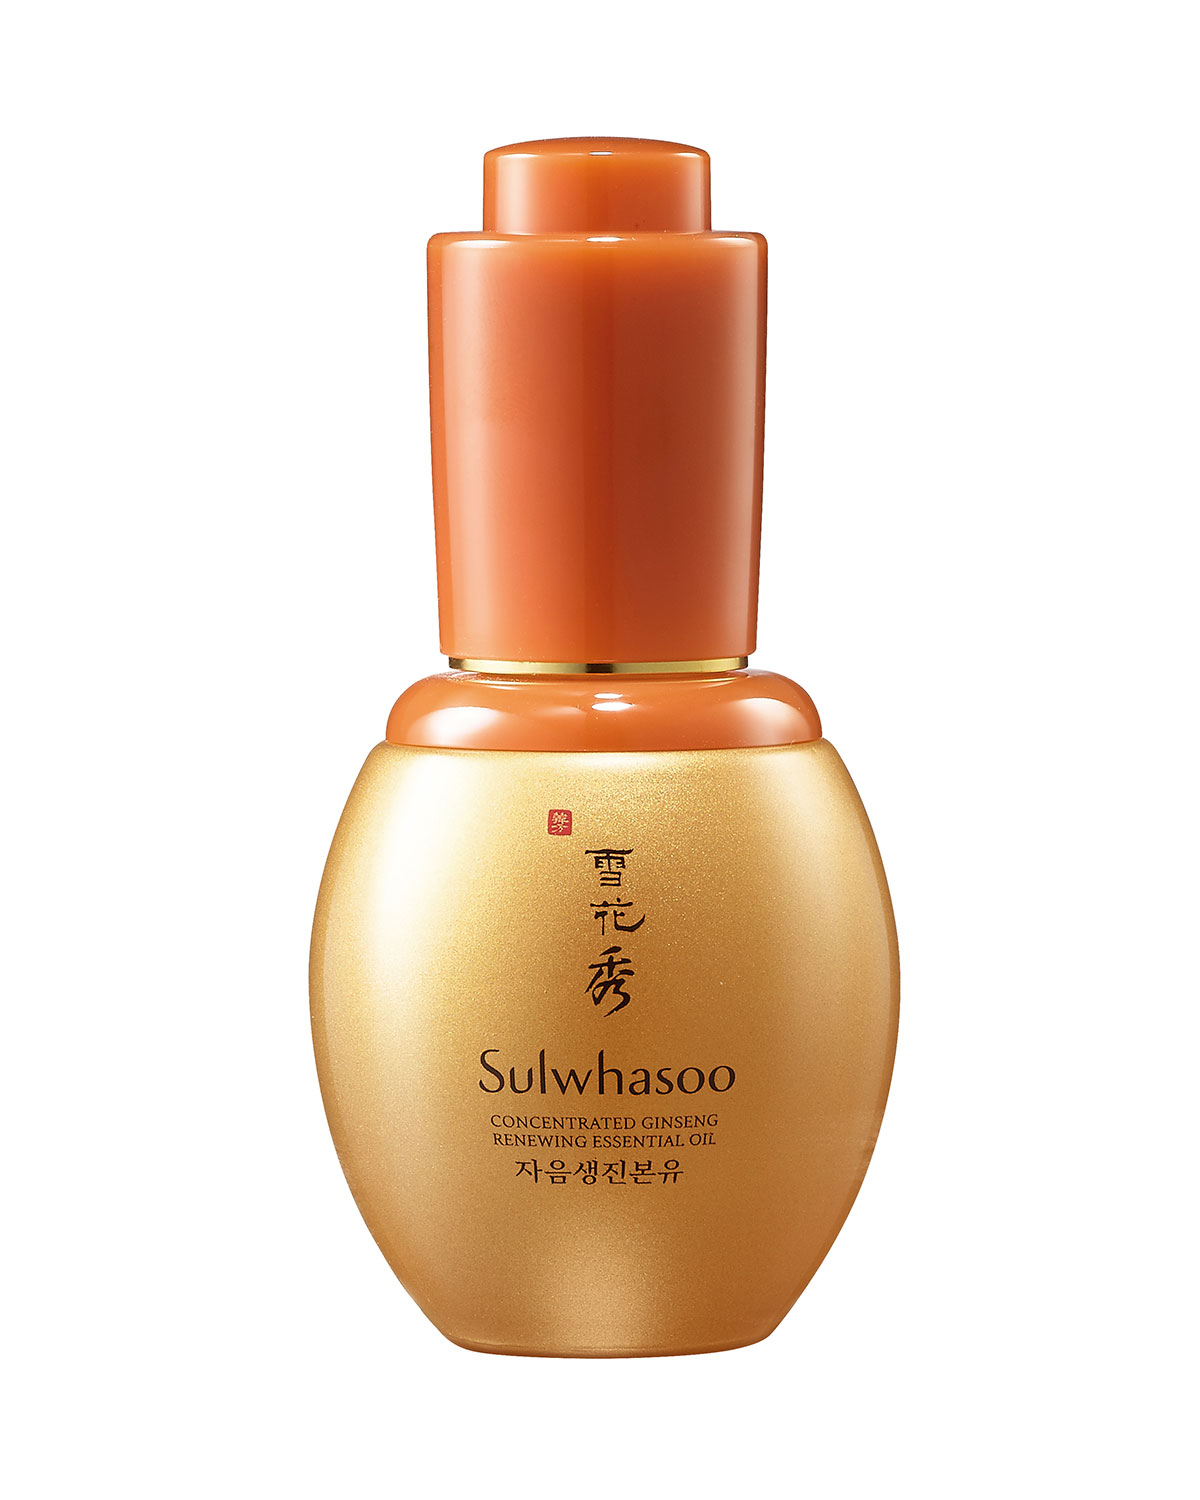 Sulwhasoo CONCENTRATED GINSENG RENEWING ESSENTIAL OIL, 0.6 OZ./ 20 ML